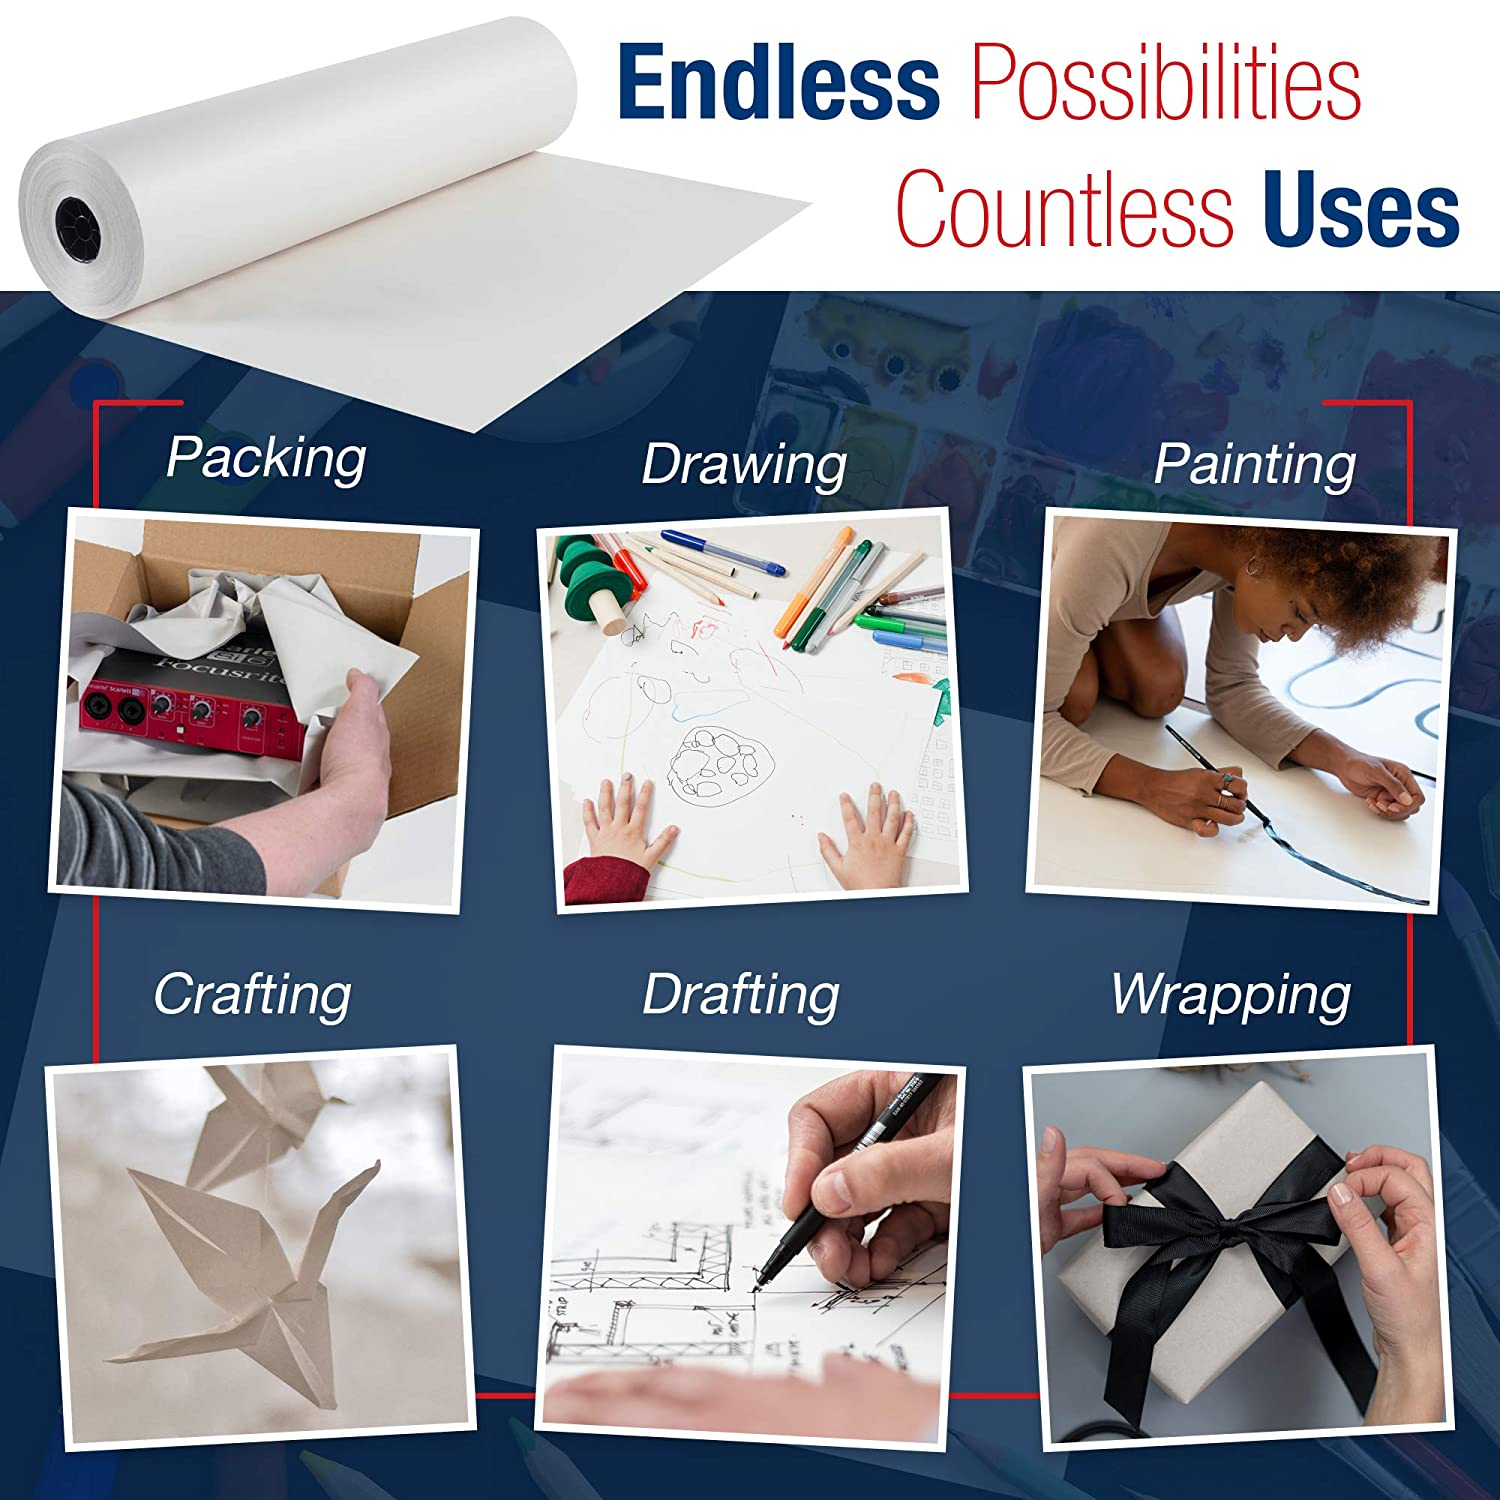 Storing BOX USA Newsprint Packing Paper Roll White and Packing 1440 Length x 30 Width 100/% Recycled Great for Moving